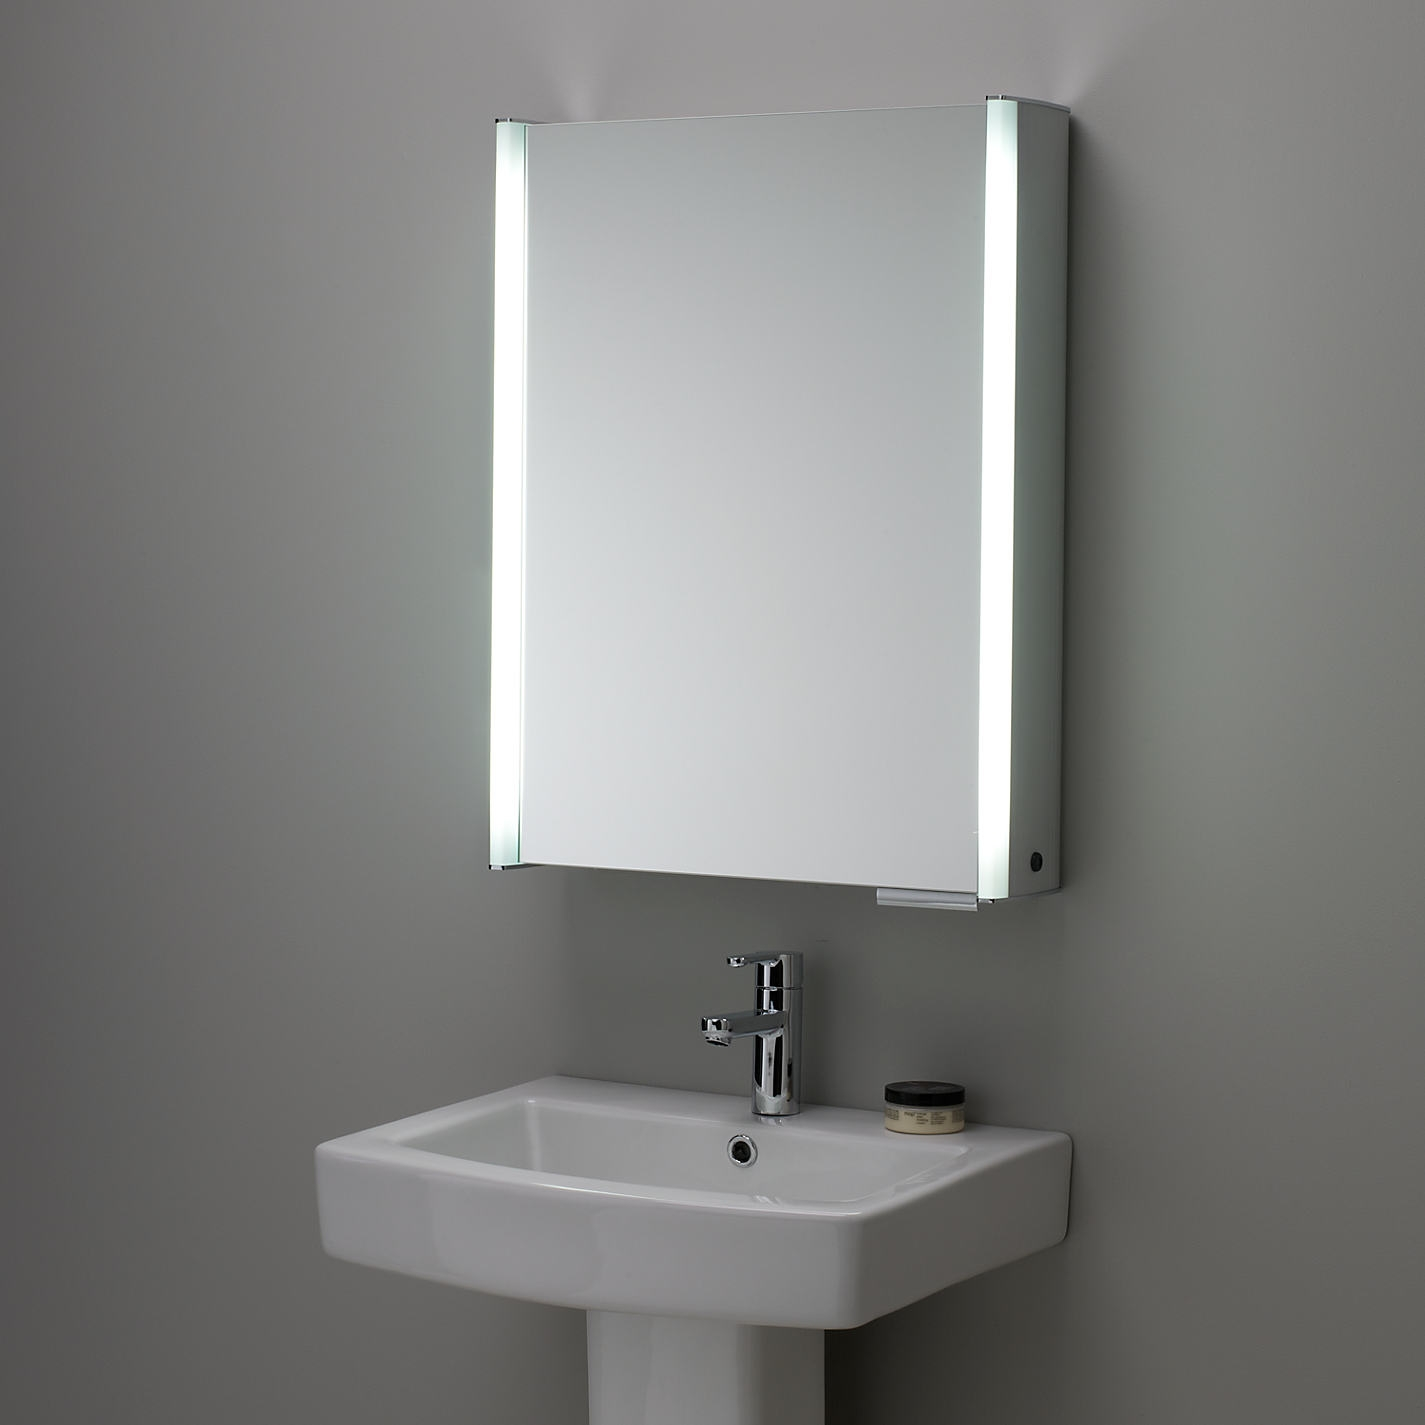 Mirrored Bathroom Cabinet With Light And Shaver Socketbathroom cabinet shaver